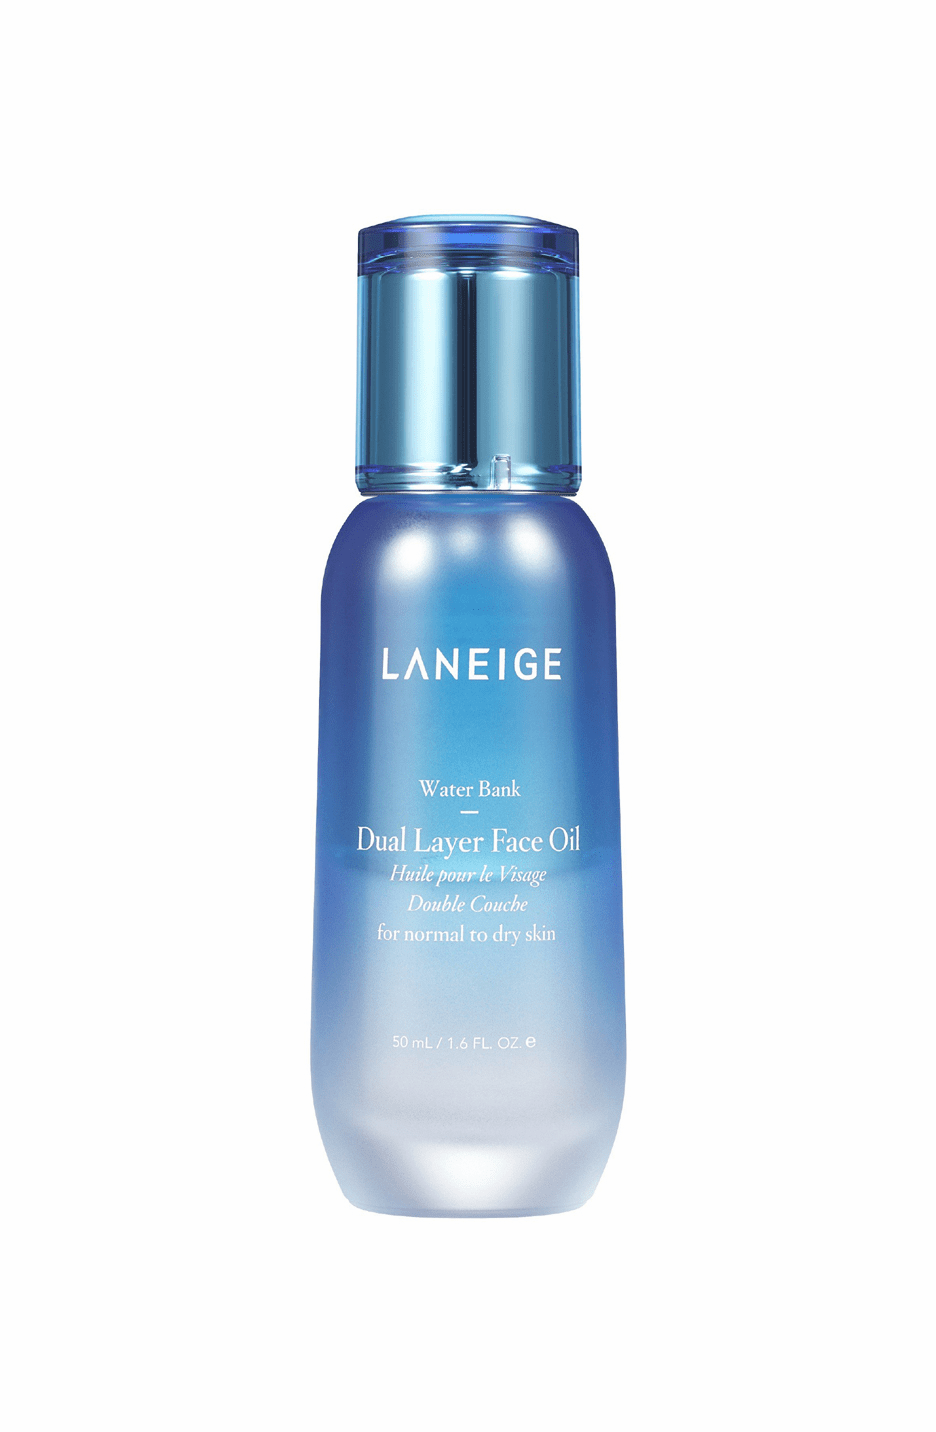 Laneige Water Bank Dual Layer Face Oil 50ml